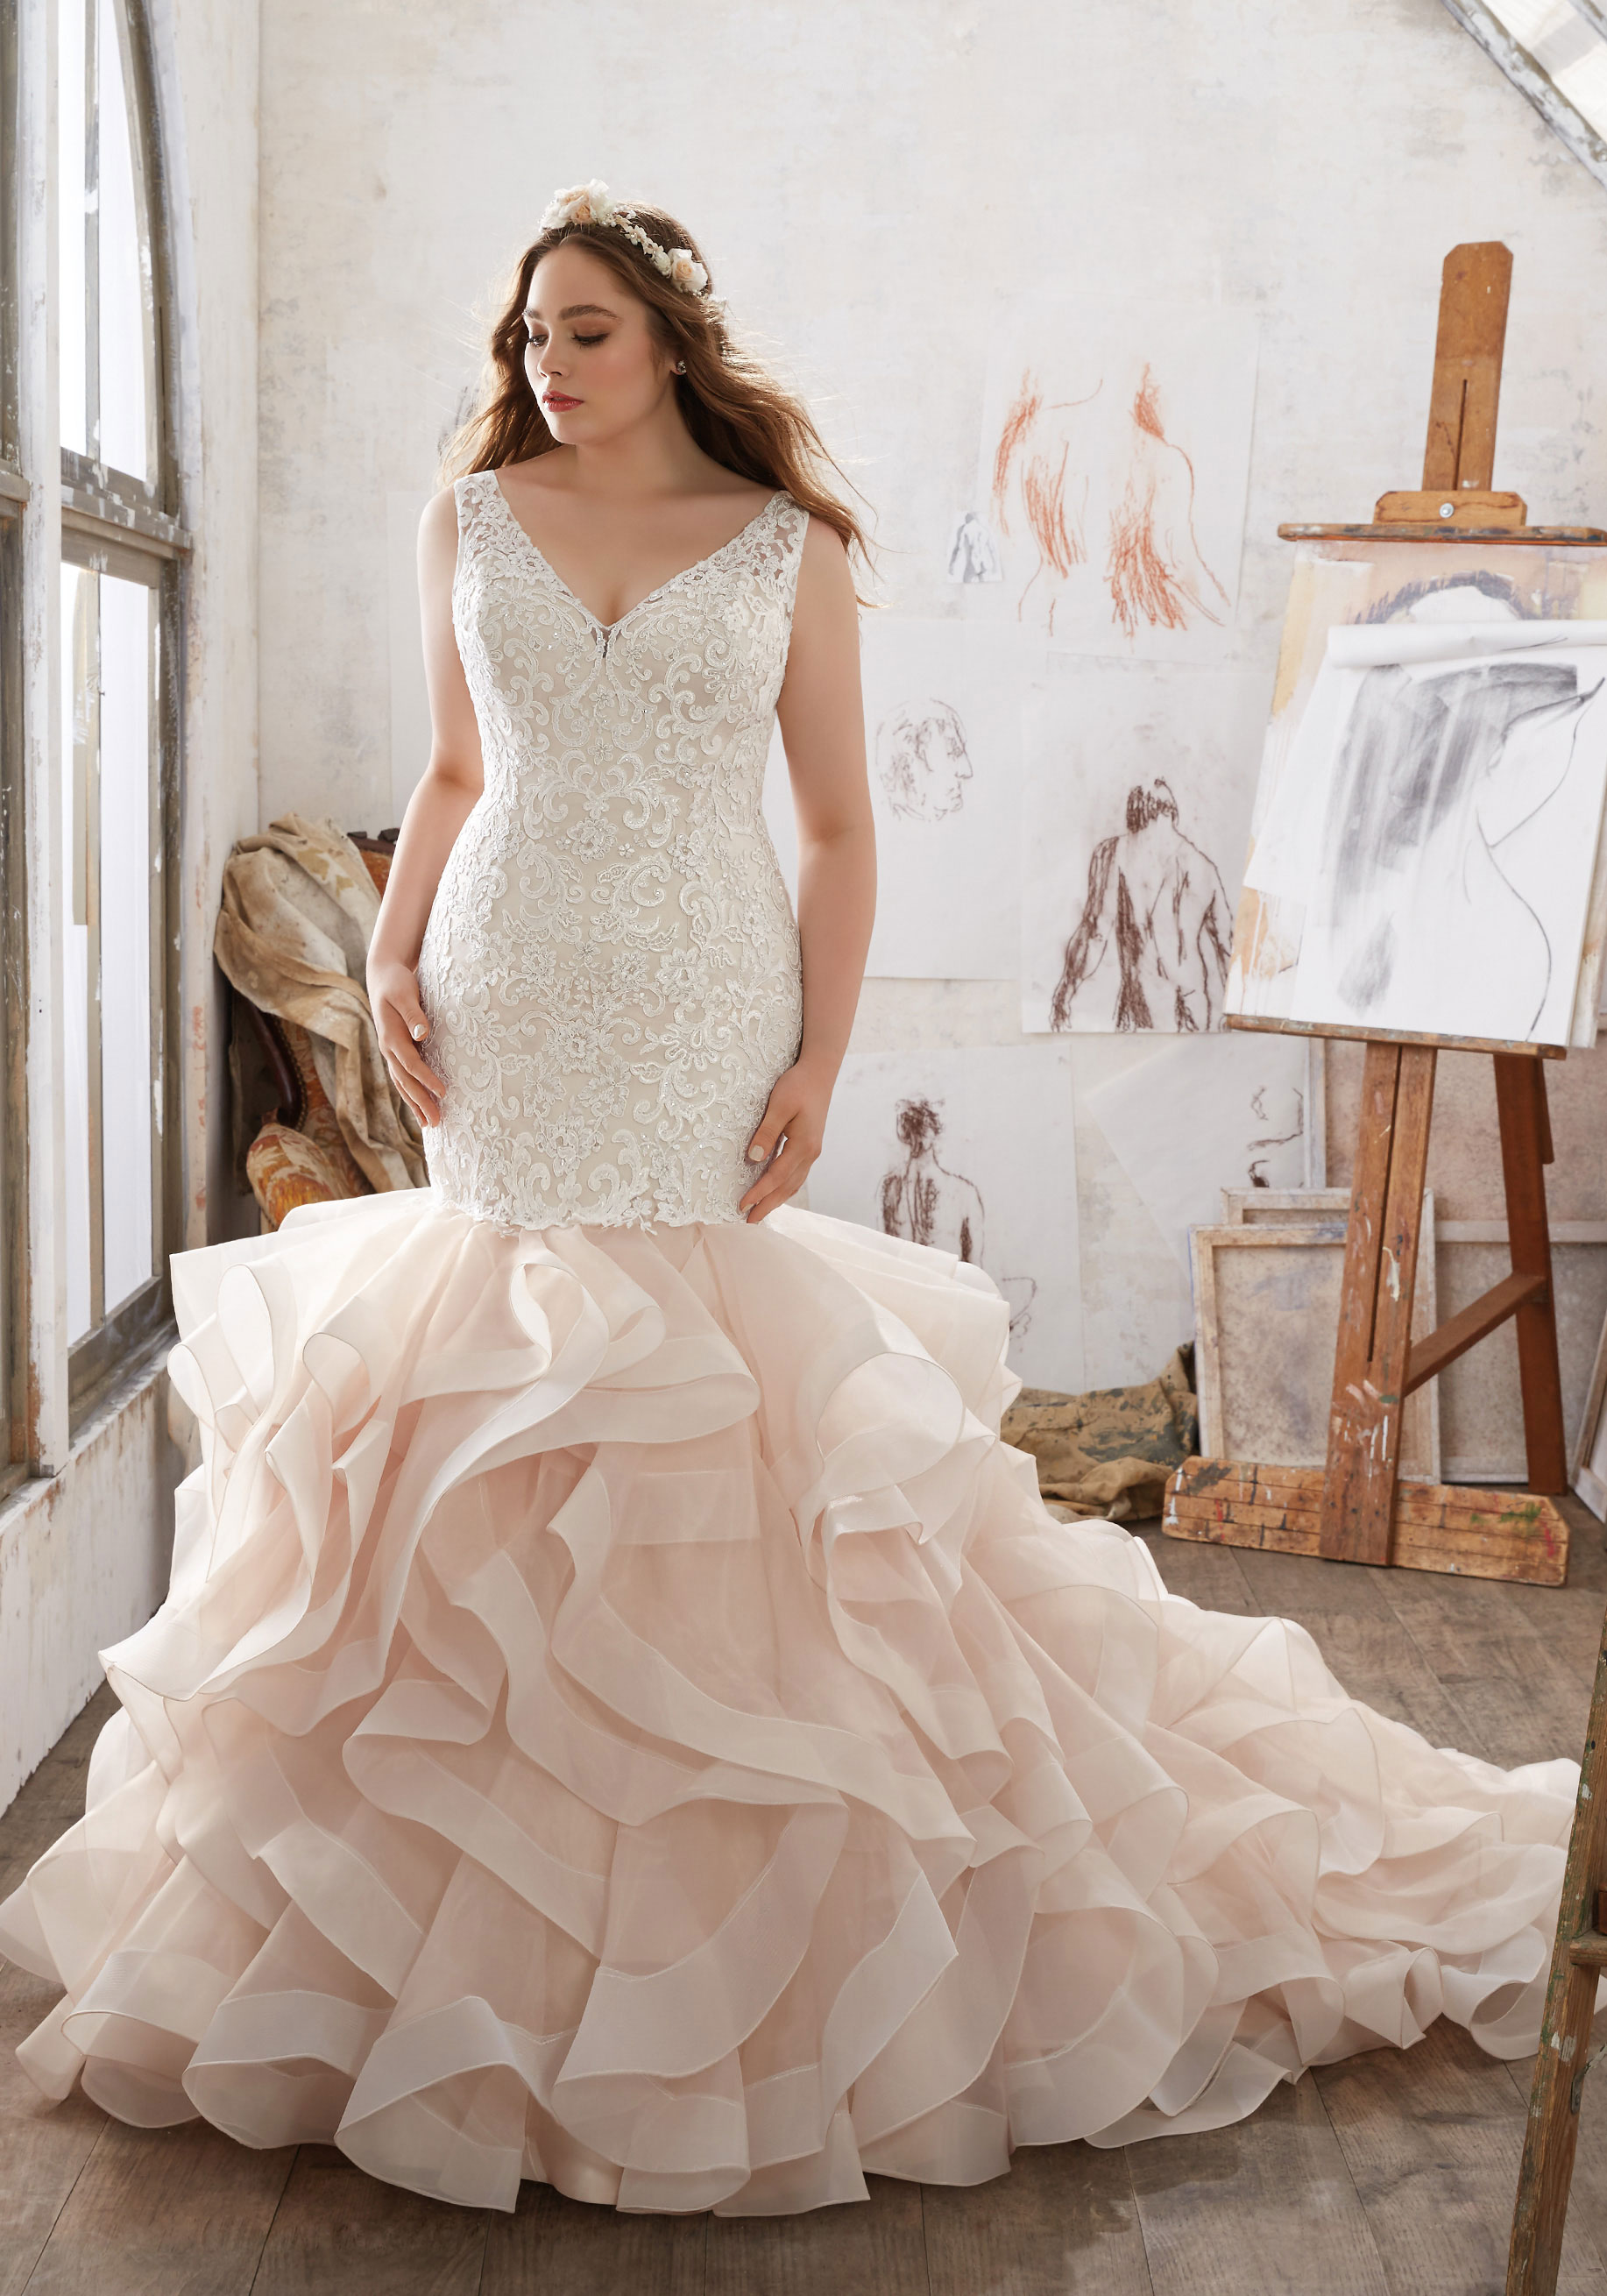 Mori Lee Julietta 3216 All About Eve Bridalwear